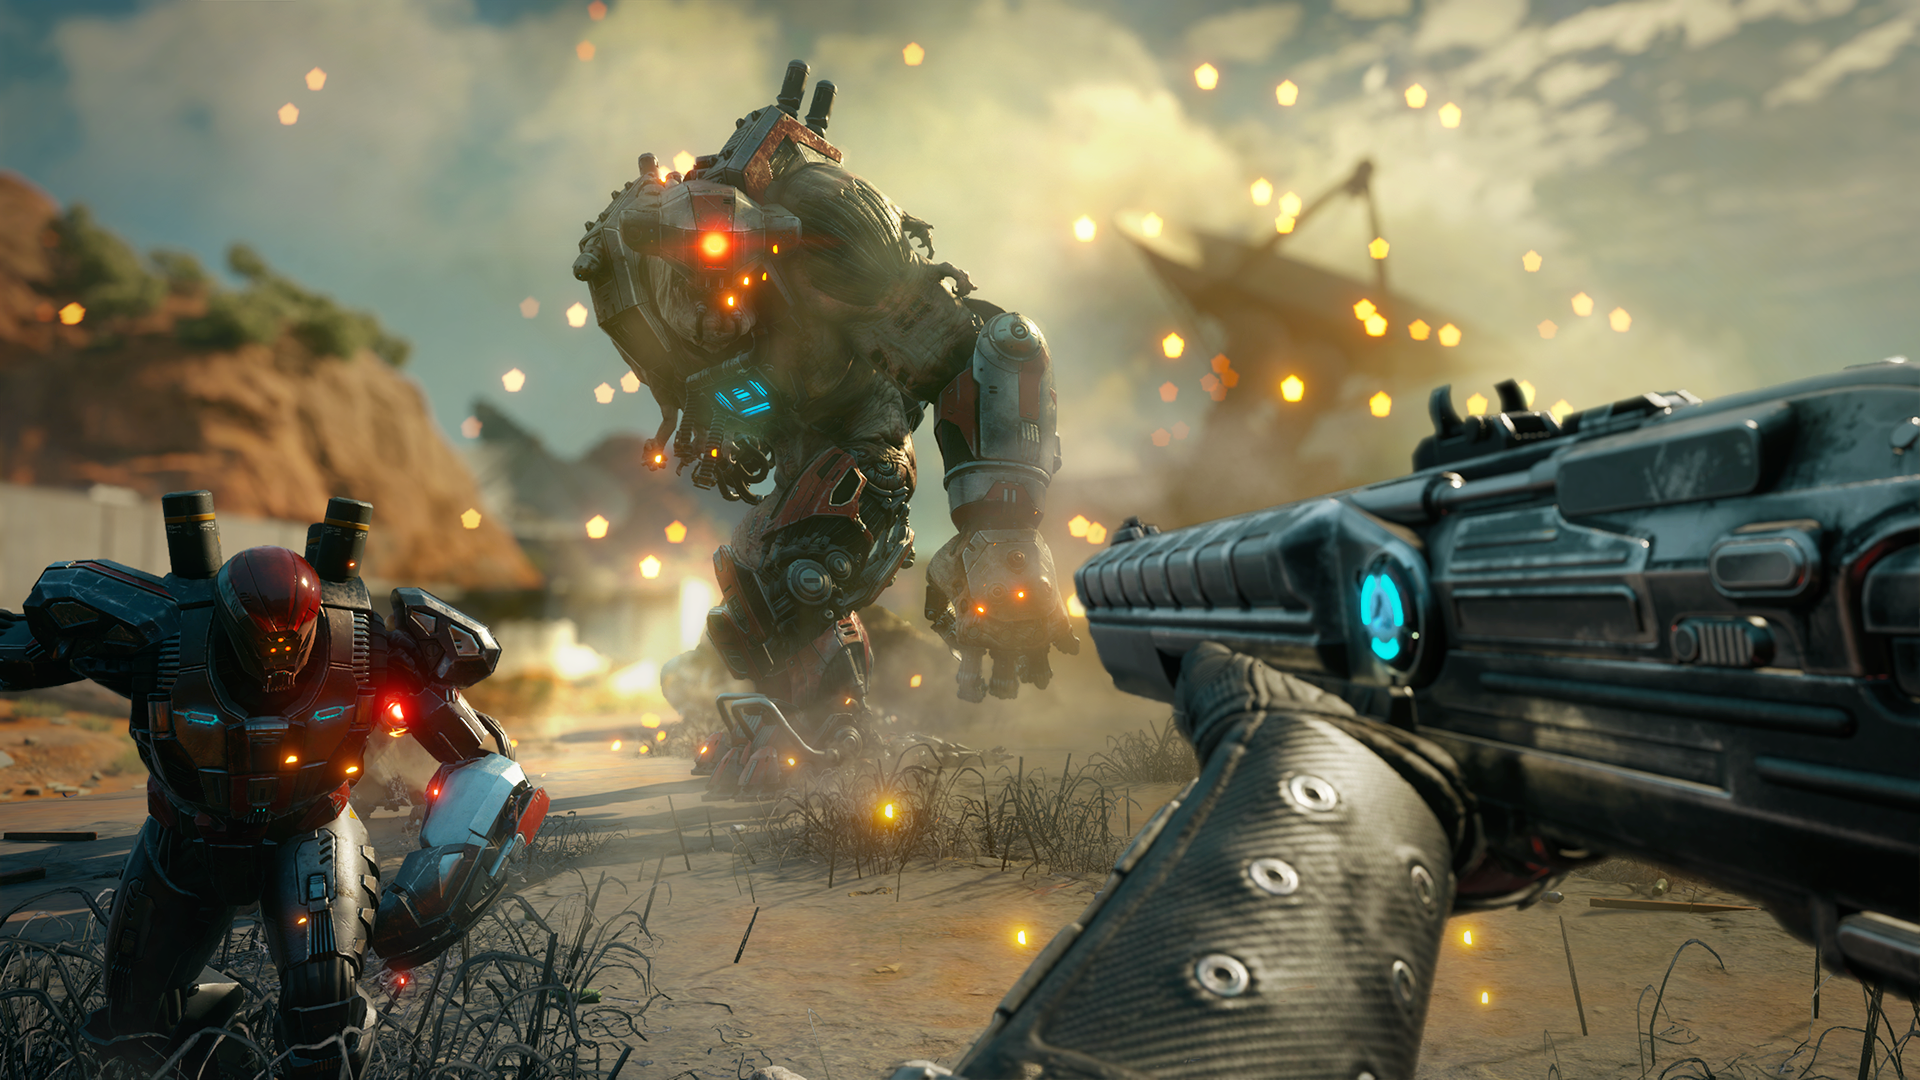 Likely hitting shelves in February, Rage 2 blends OTT action with a vast open world